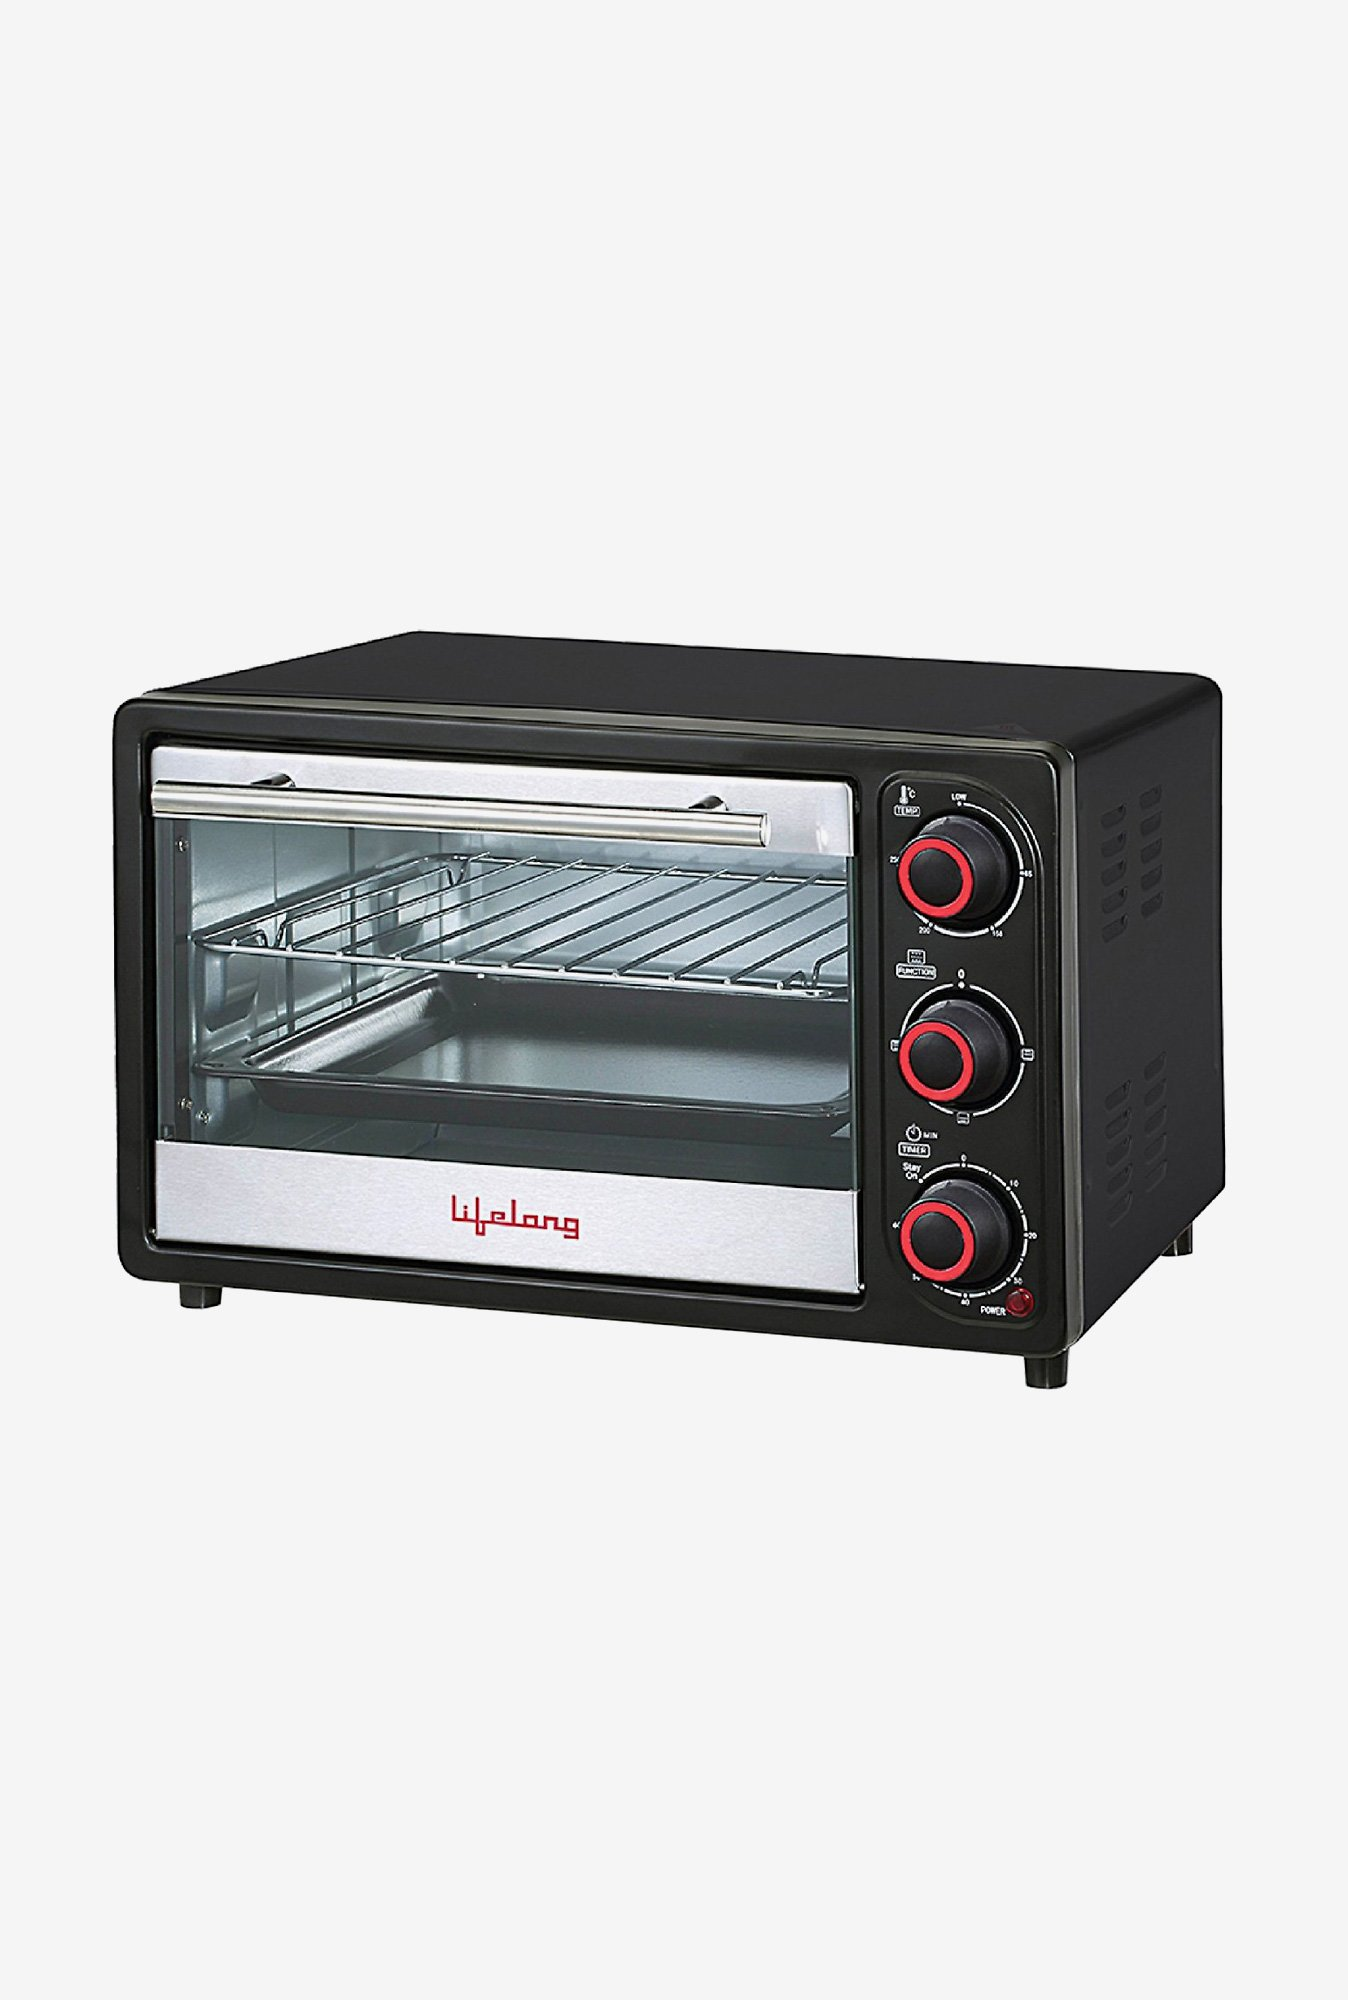 Lifelong 16L Oven Toaster Griller (Black)